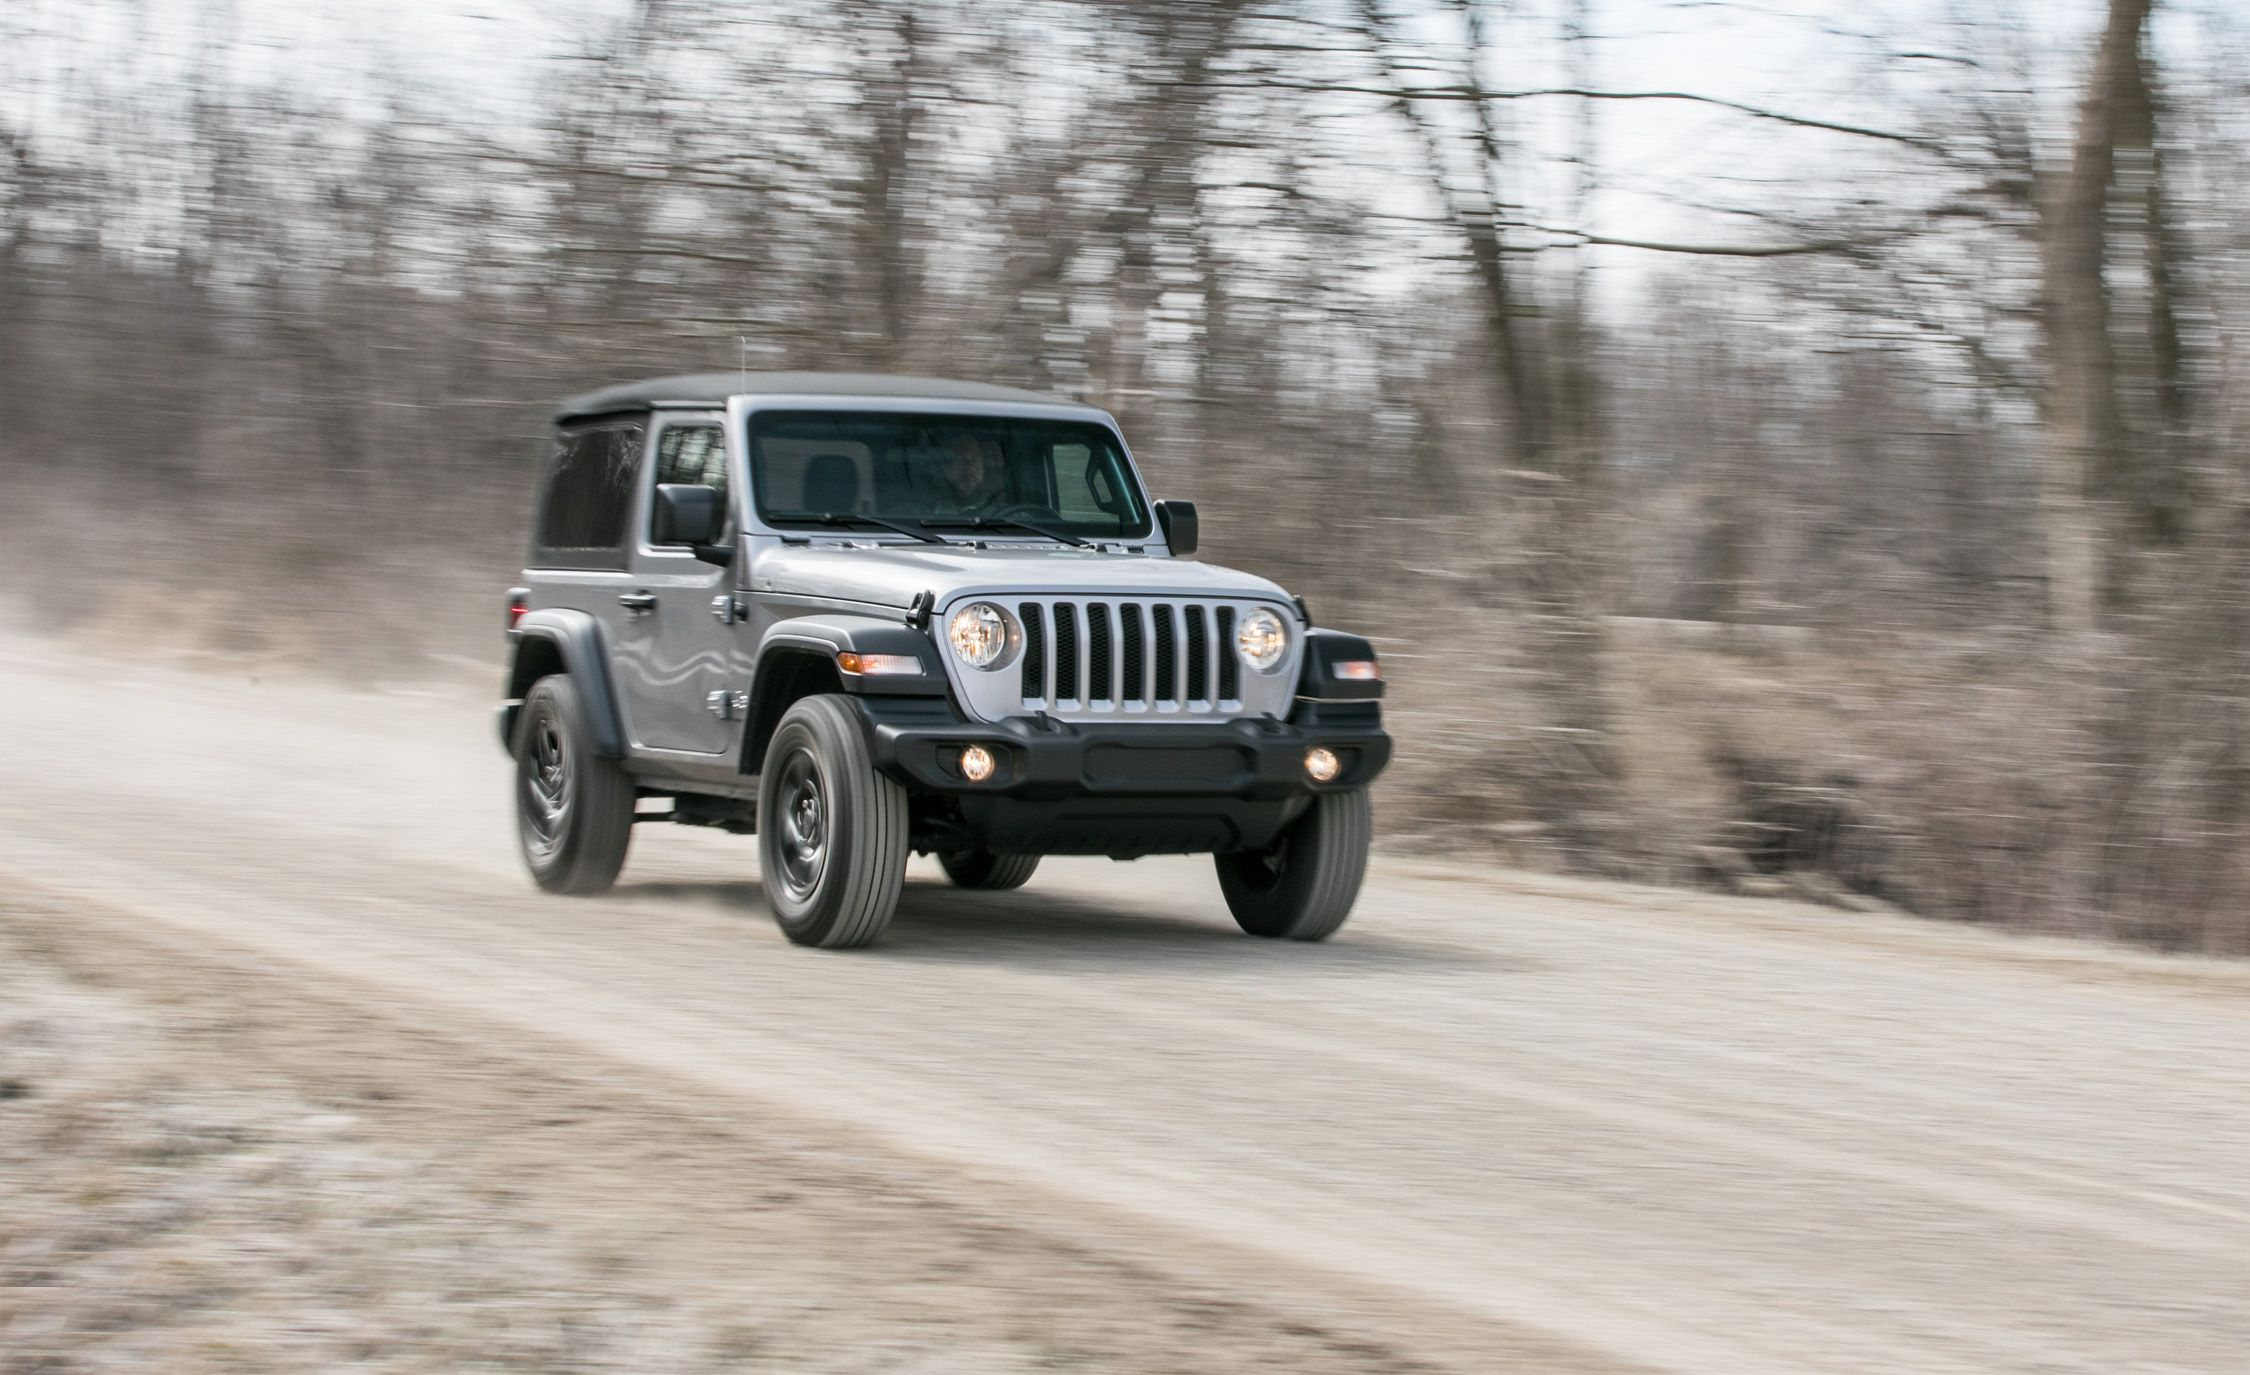 2018 Jeep Wrangler V-6 4x4 Manual